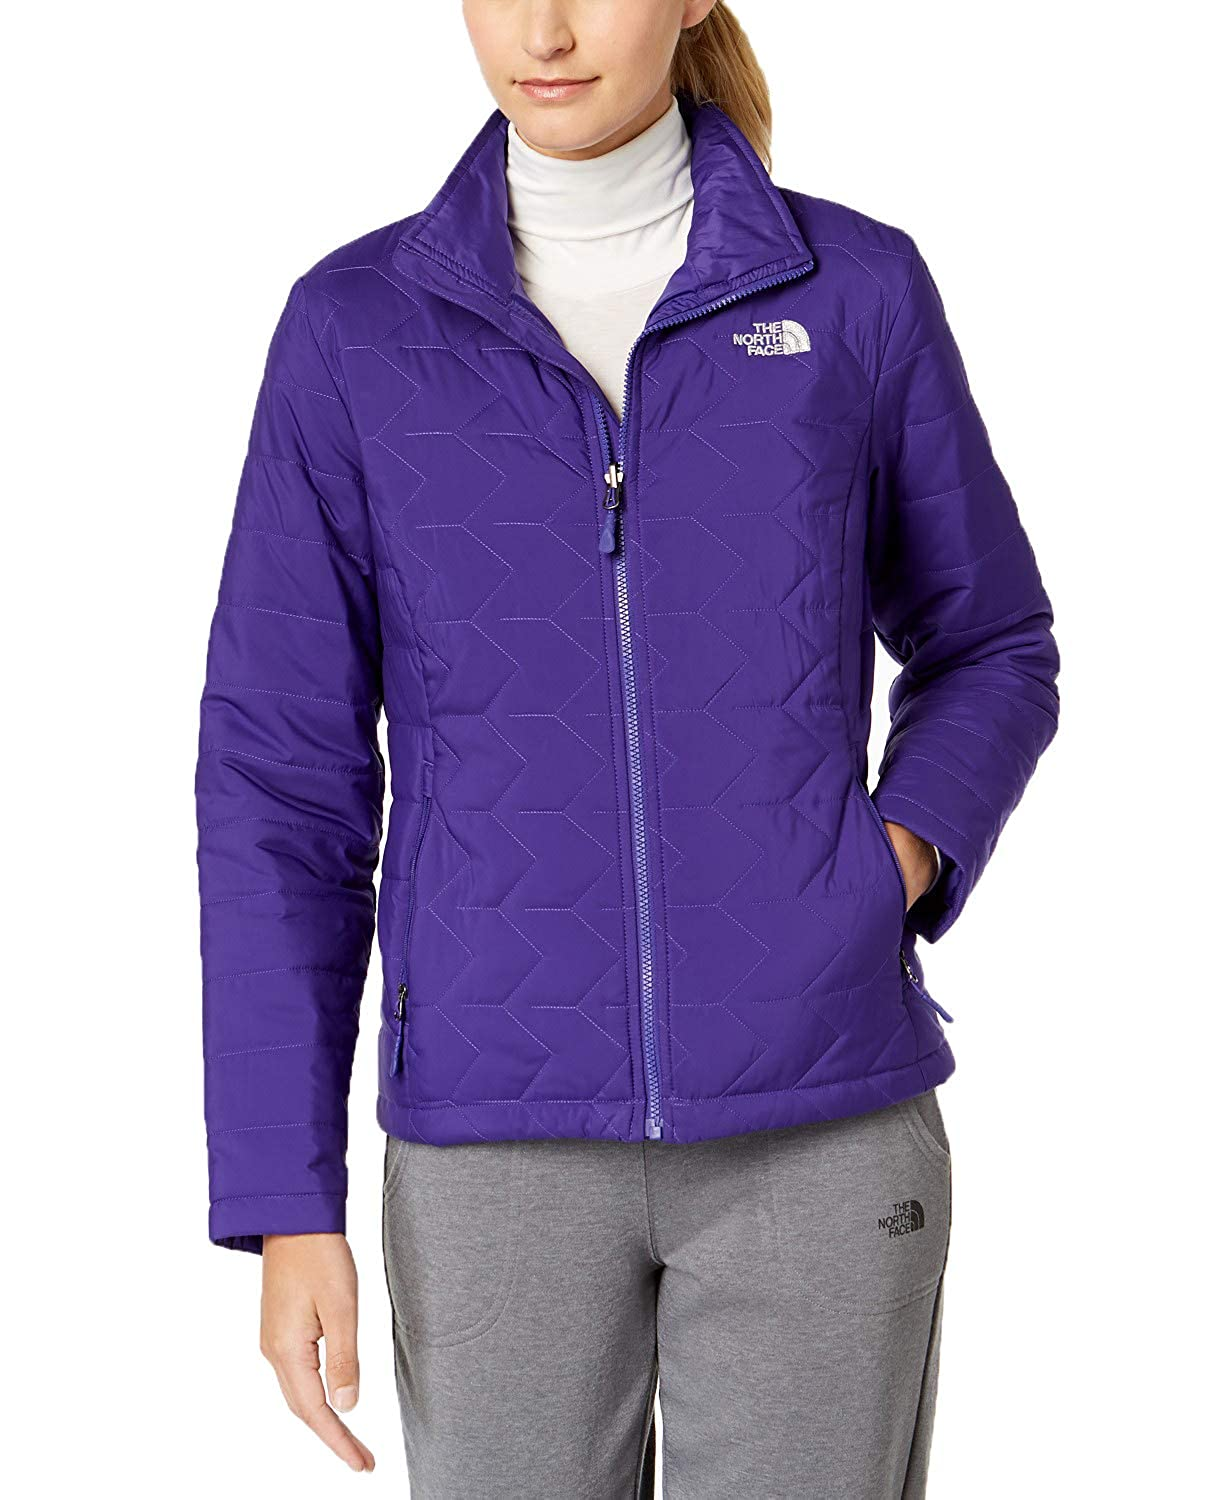 21401bff8 Amazon.com: The North Face Women's Tamburello Parka Jacket (Bright ...